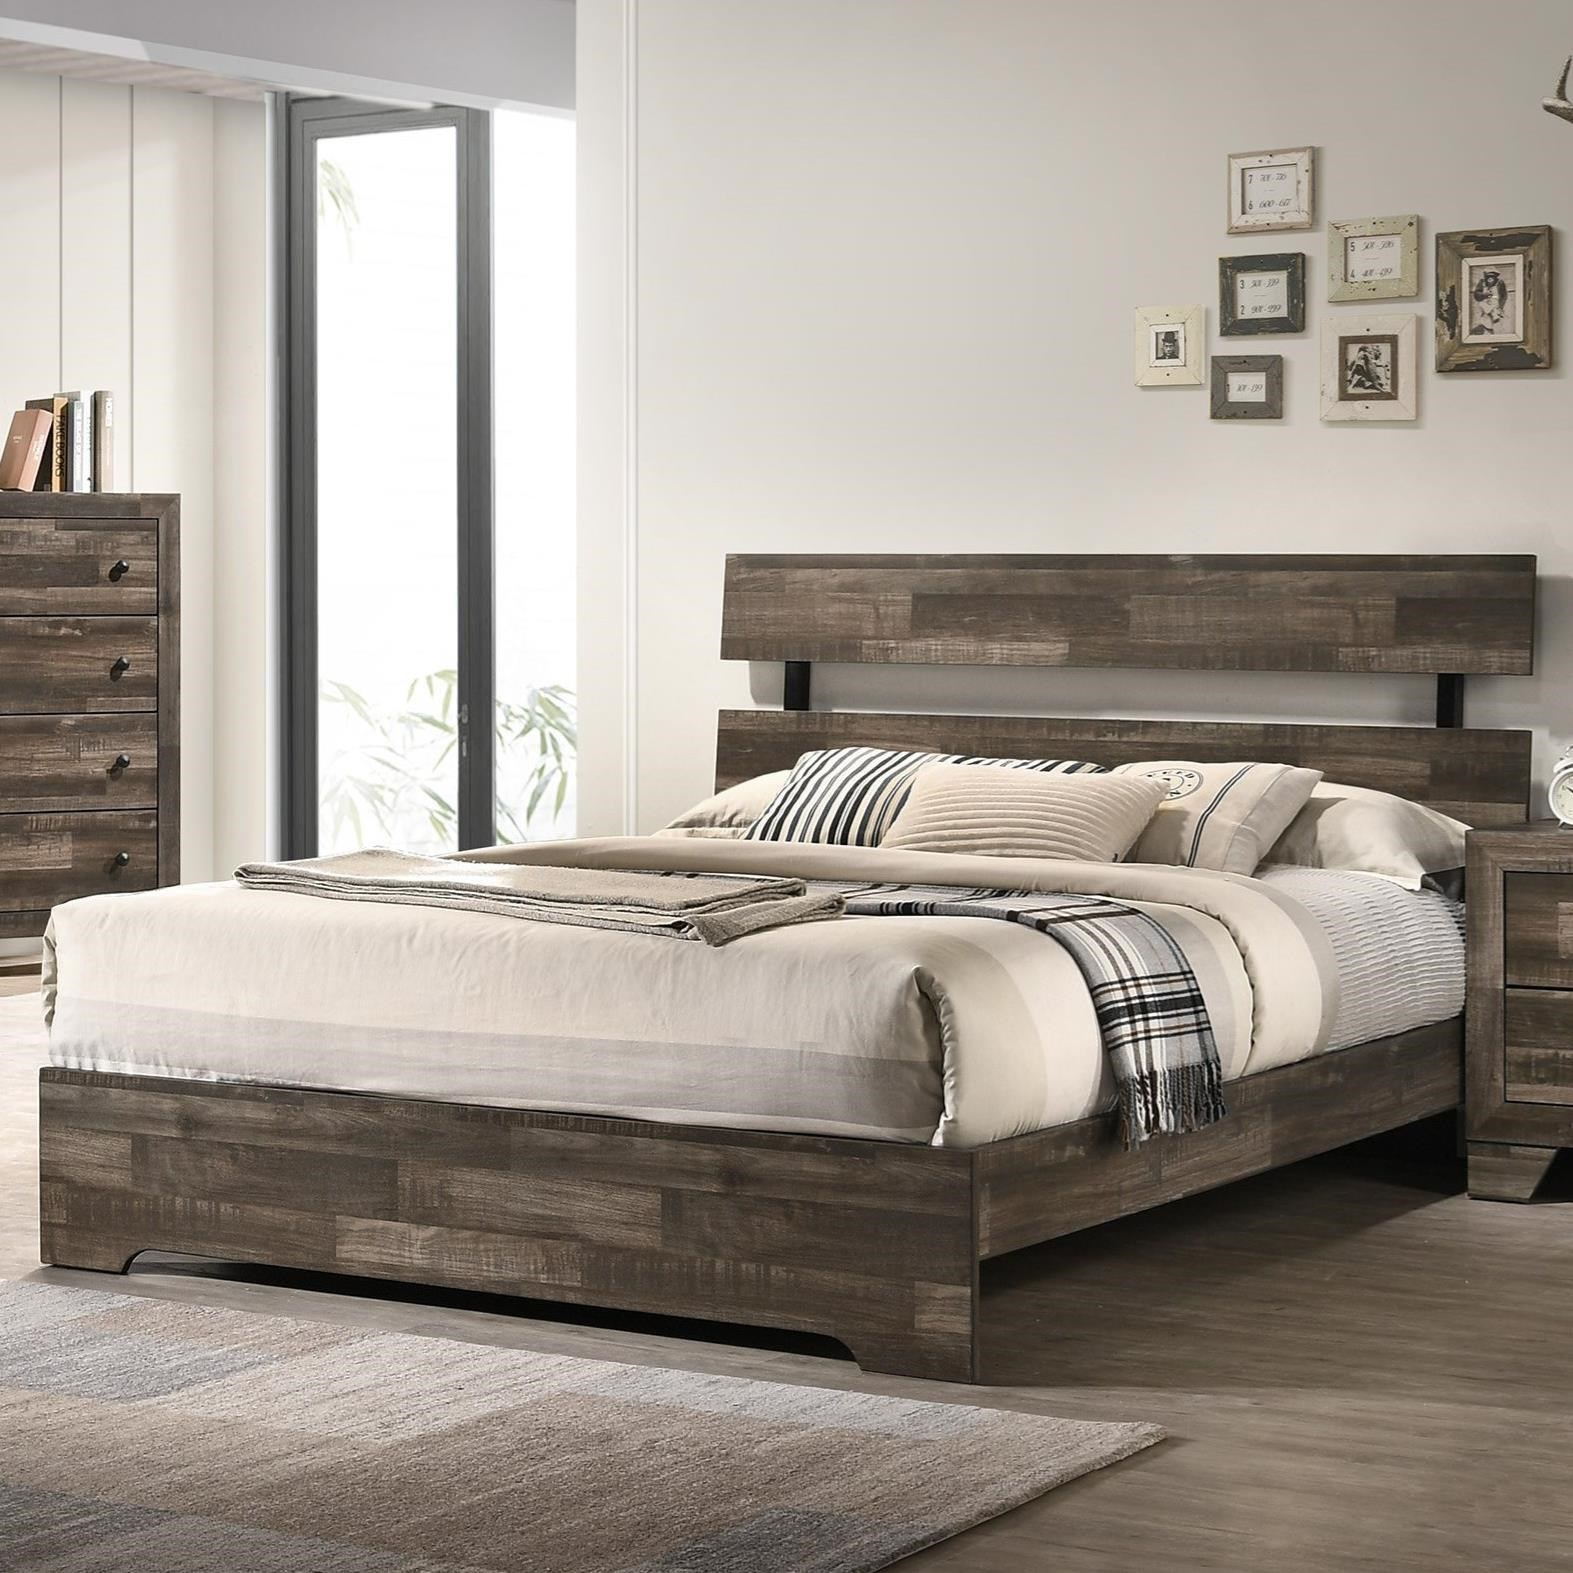 Rustic Full Bed